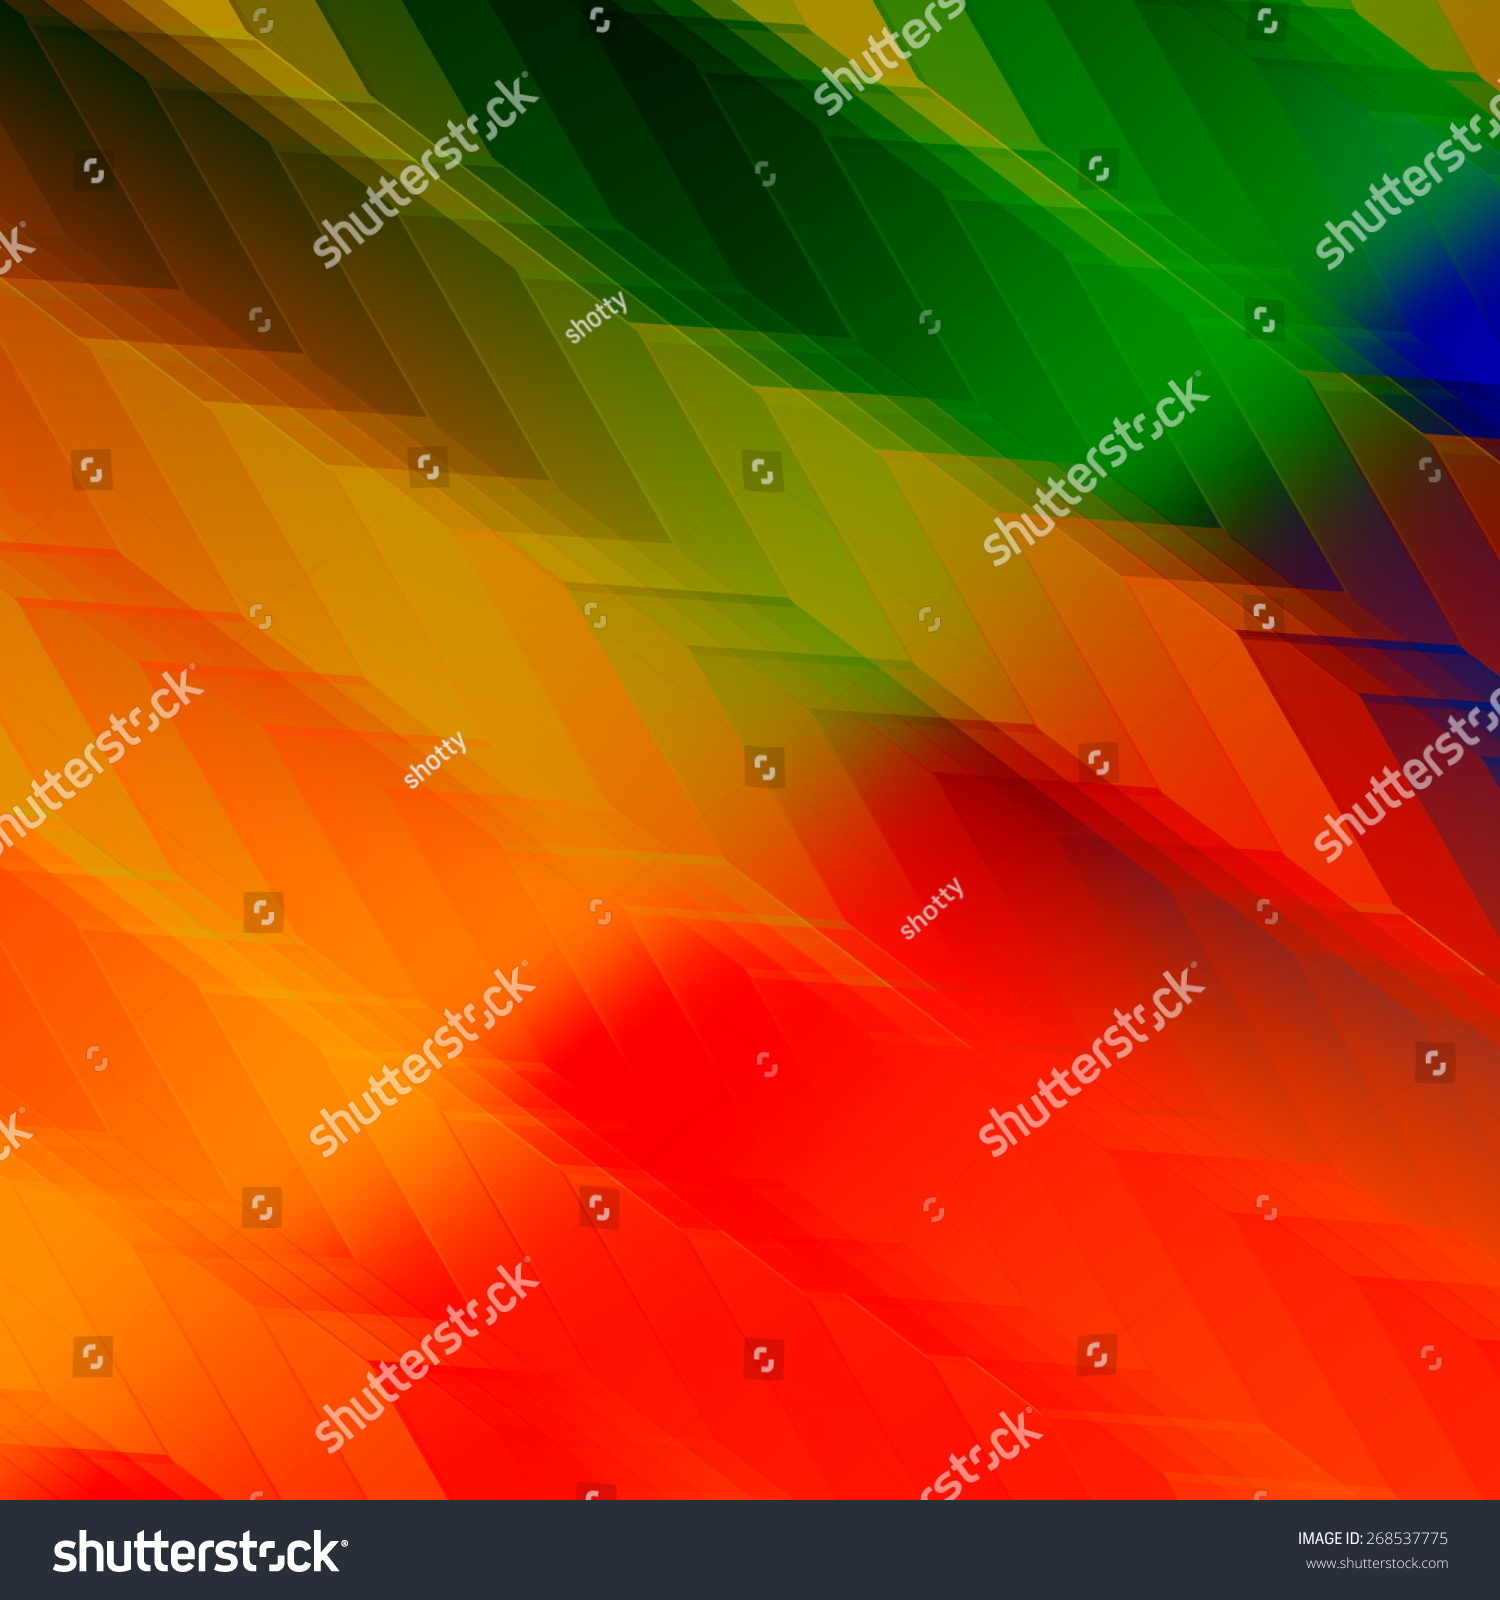 colorful rainbow colors background artistic stylish design abstract color pattern modern illustration for